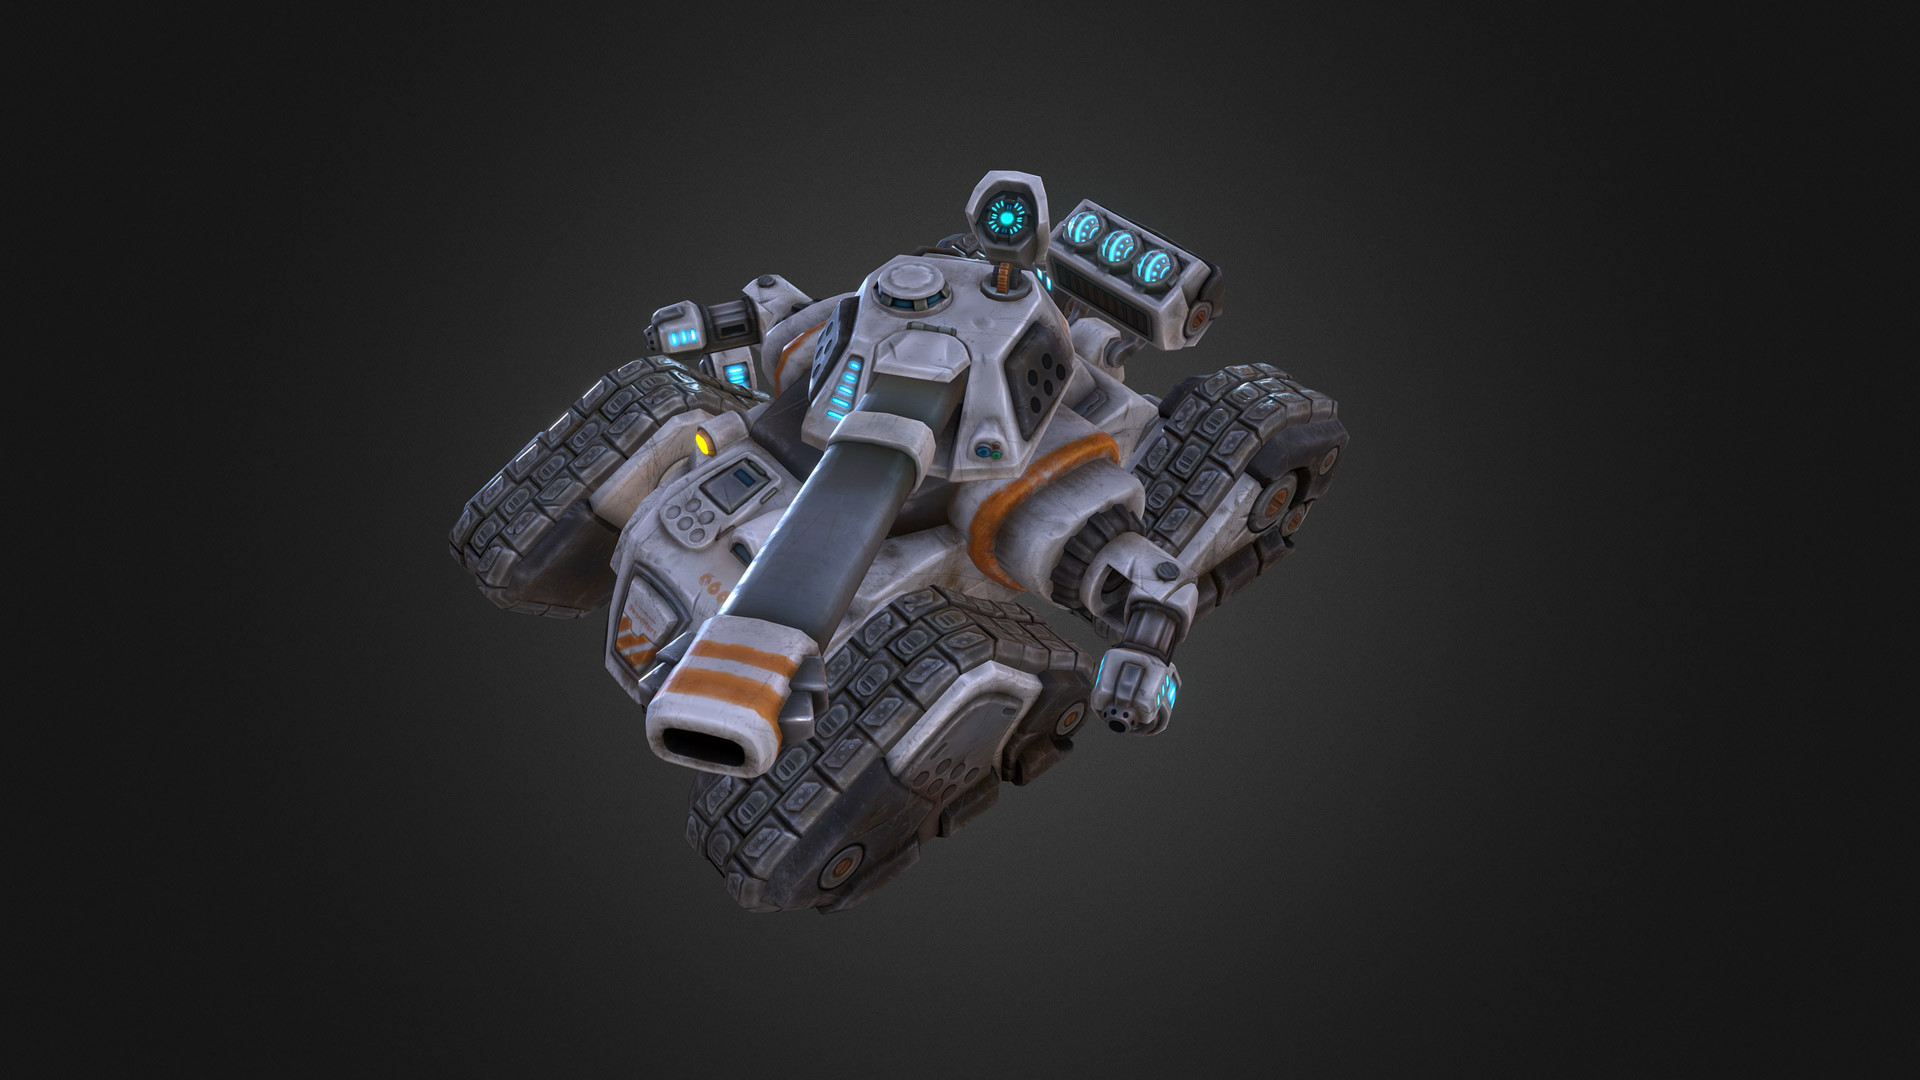 martin prestegaard lehnsdal - scifi tank for the game forced 2